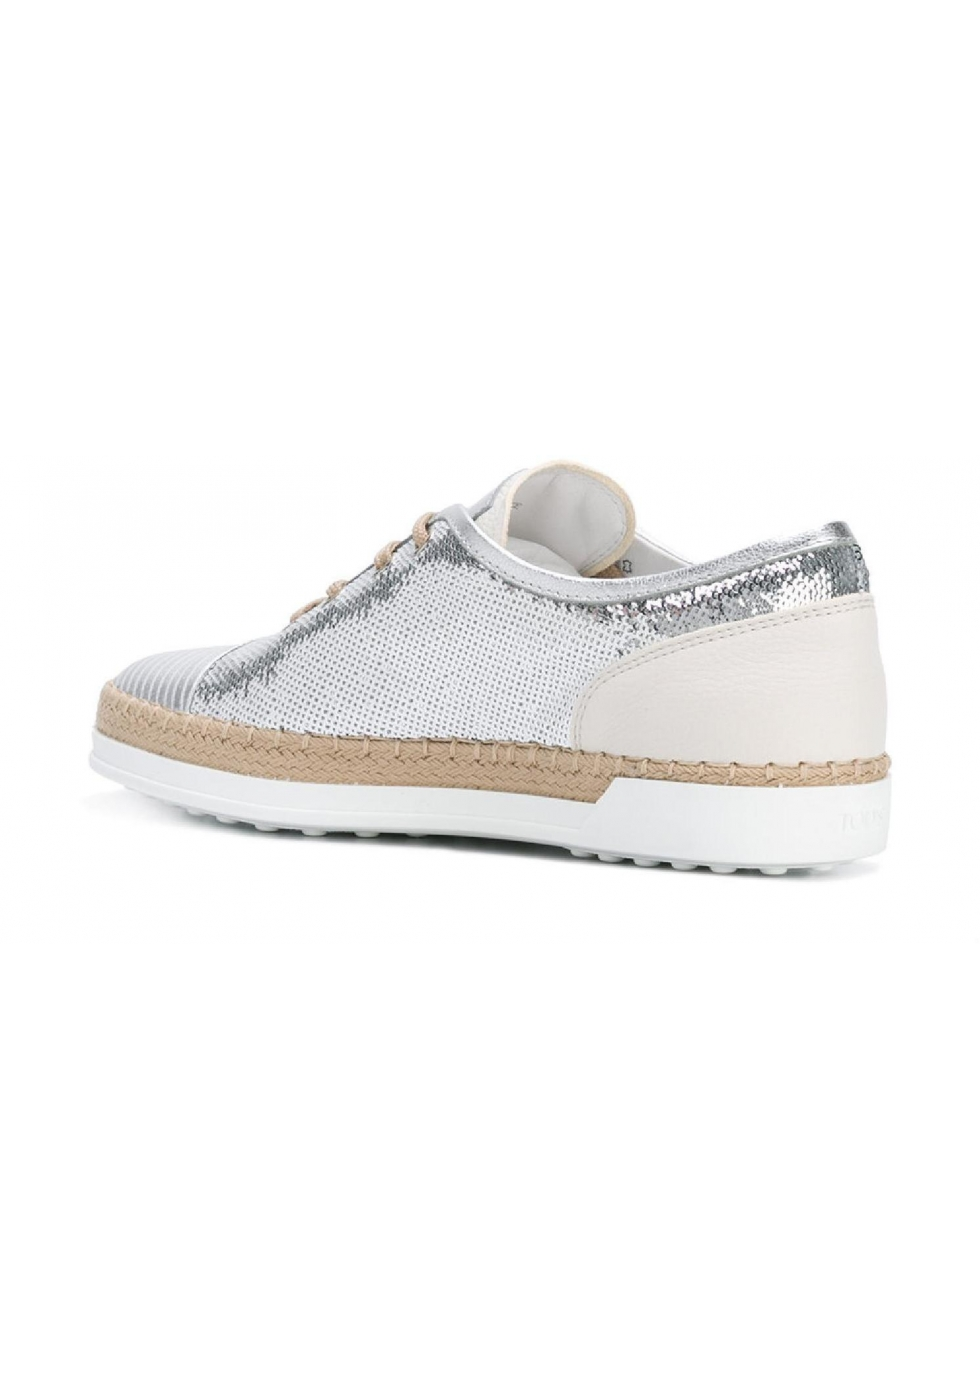 Tod's women's sneakers in silver sequins and leather ...